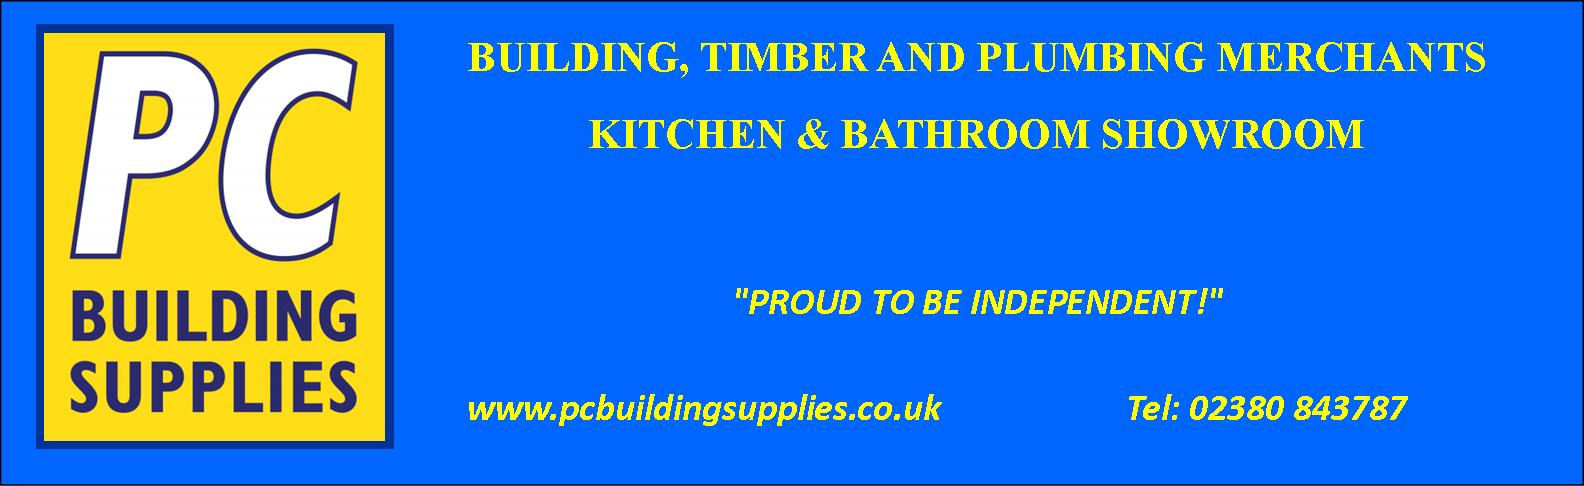 First Team Away Kit - P.C. Building Supplies - 02380 843787 - www.pcbuildingsupplies.co.uk